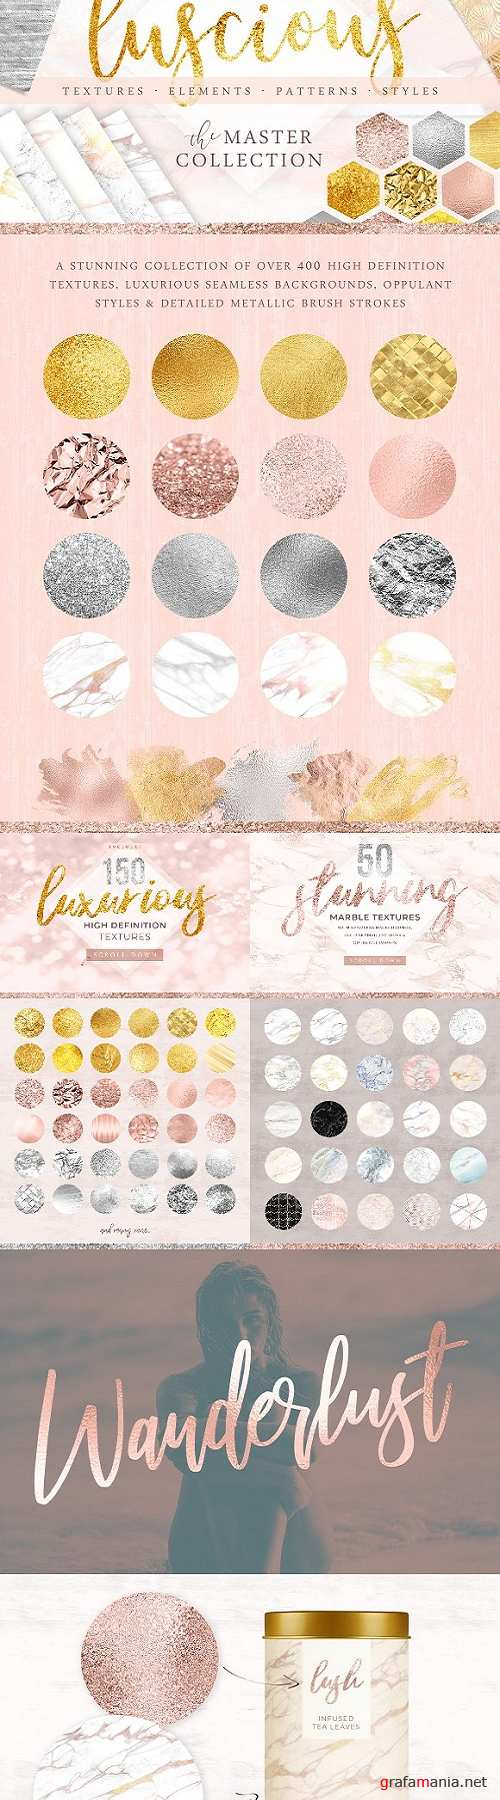 400 Gold & Marble Textures & More - 2268674